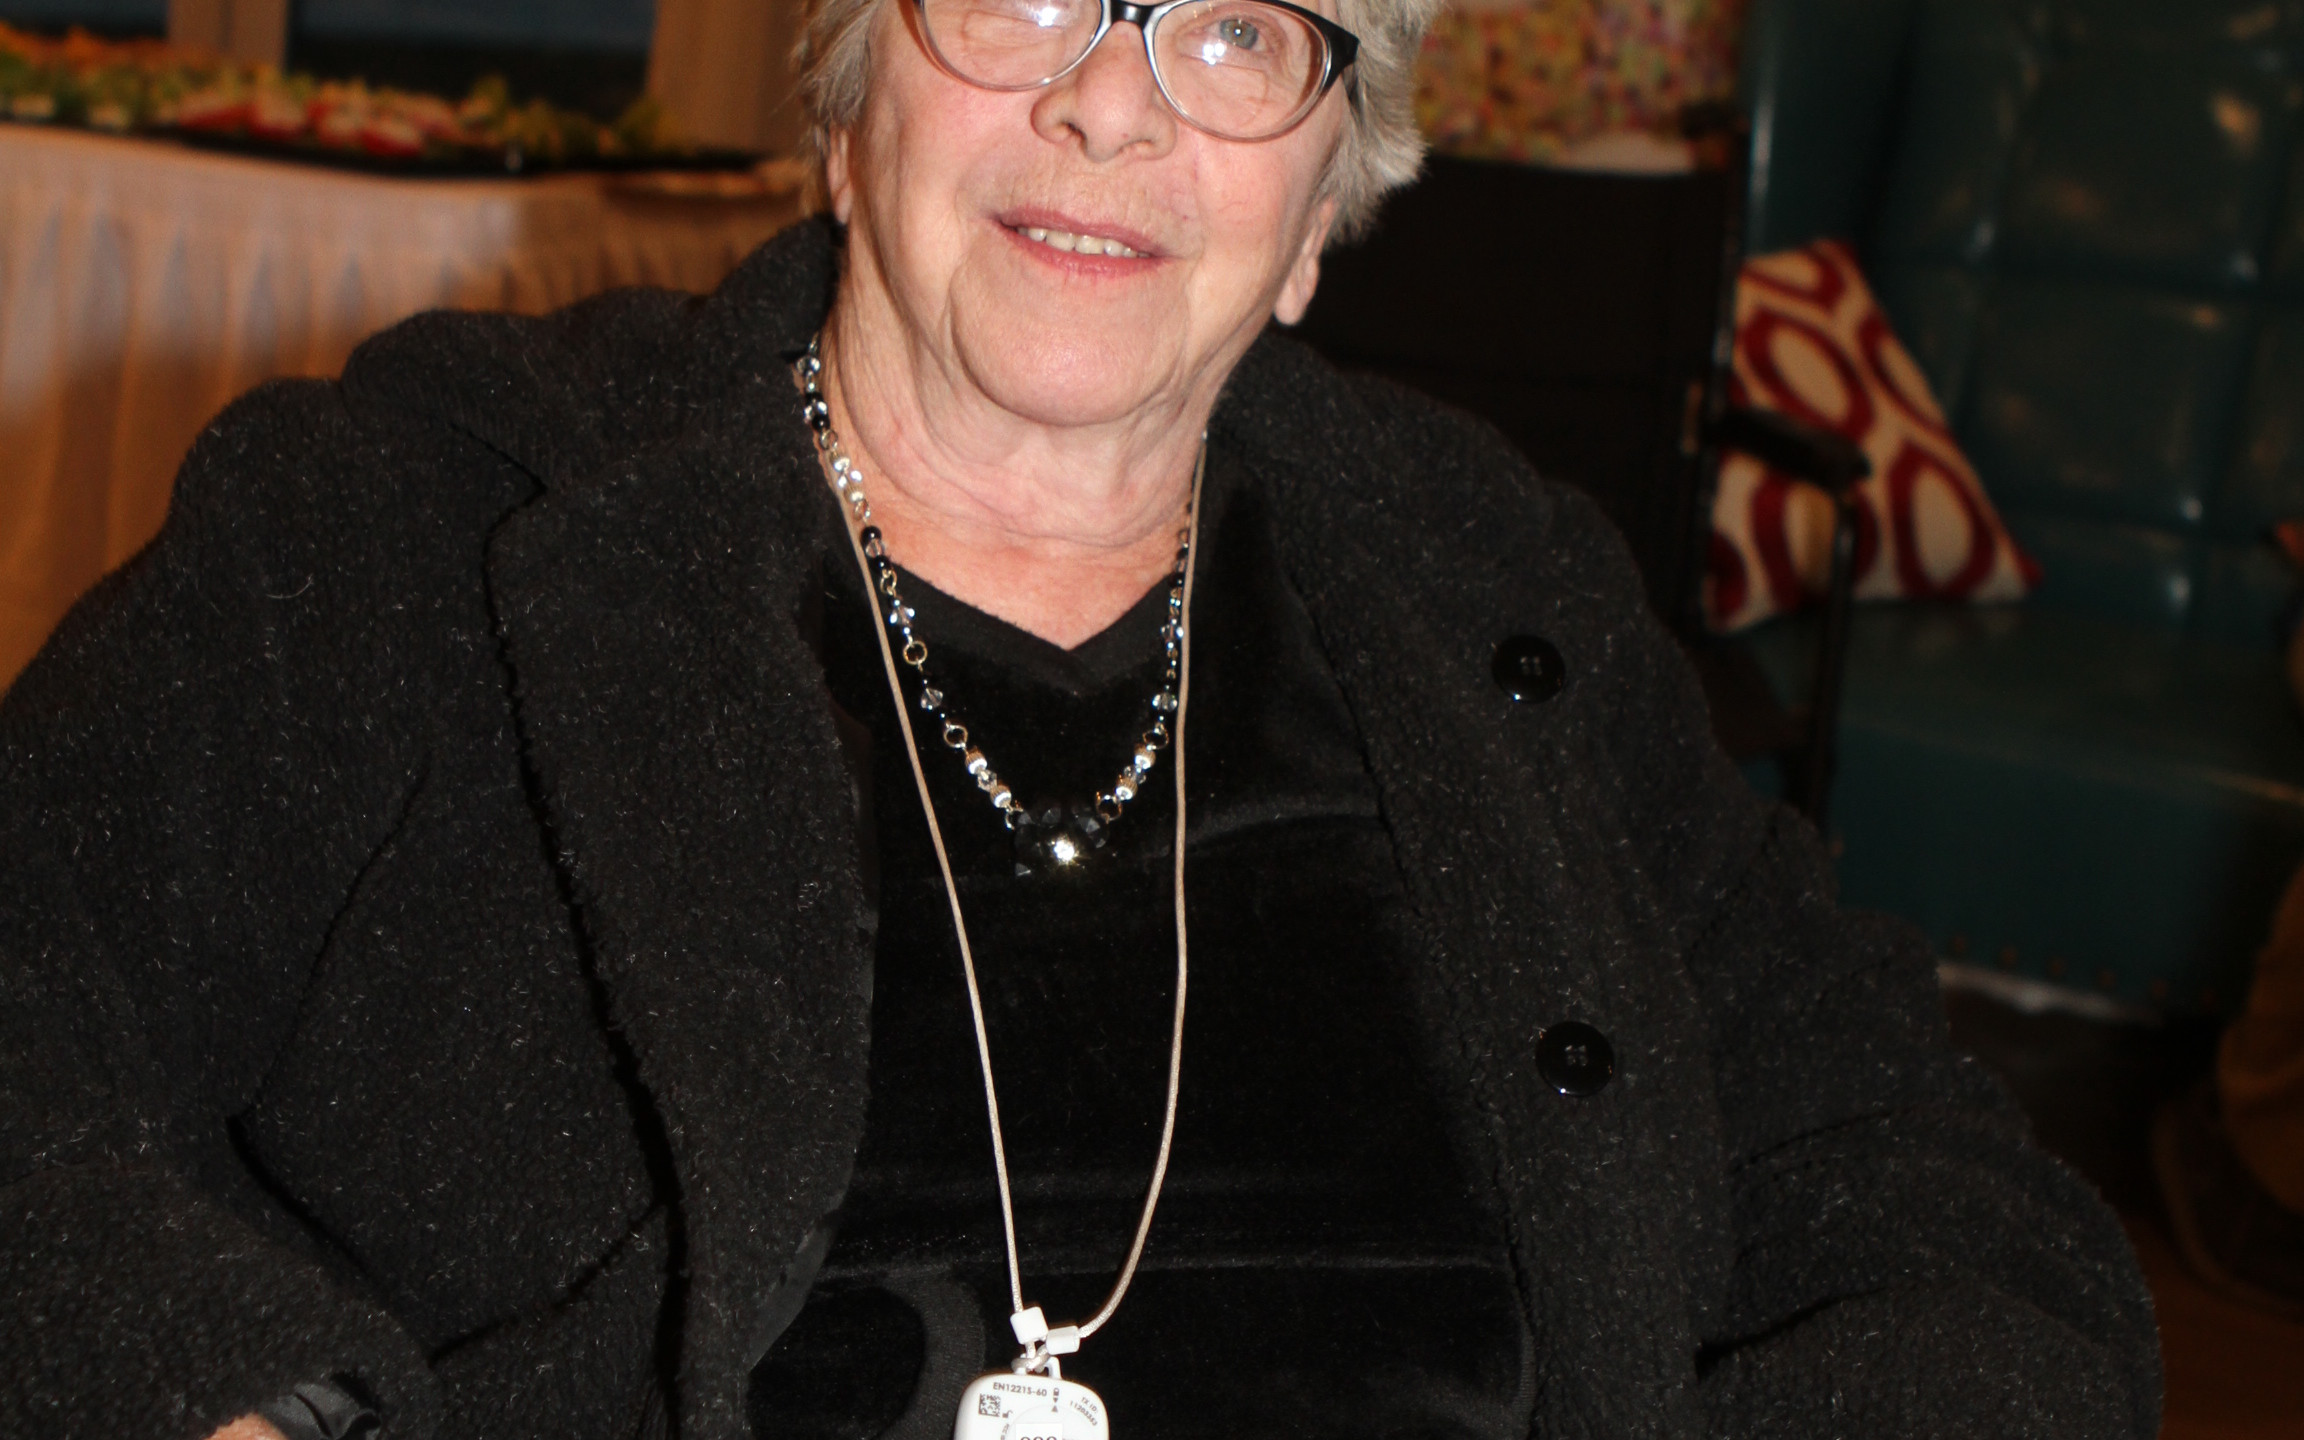 Carol McQuiston